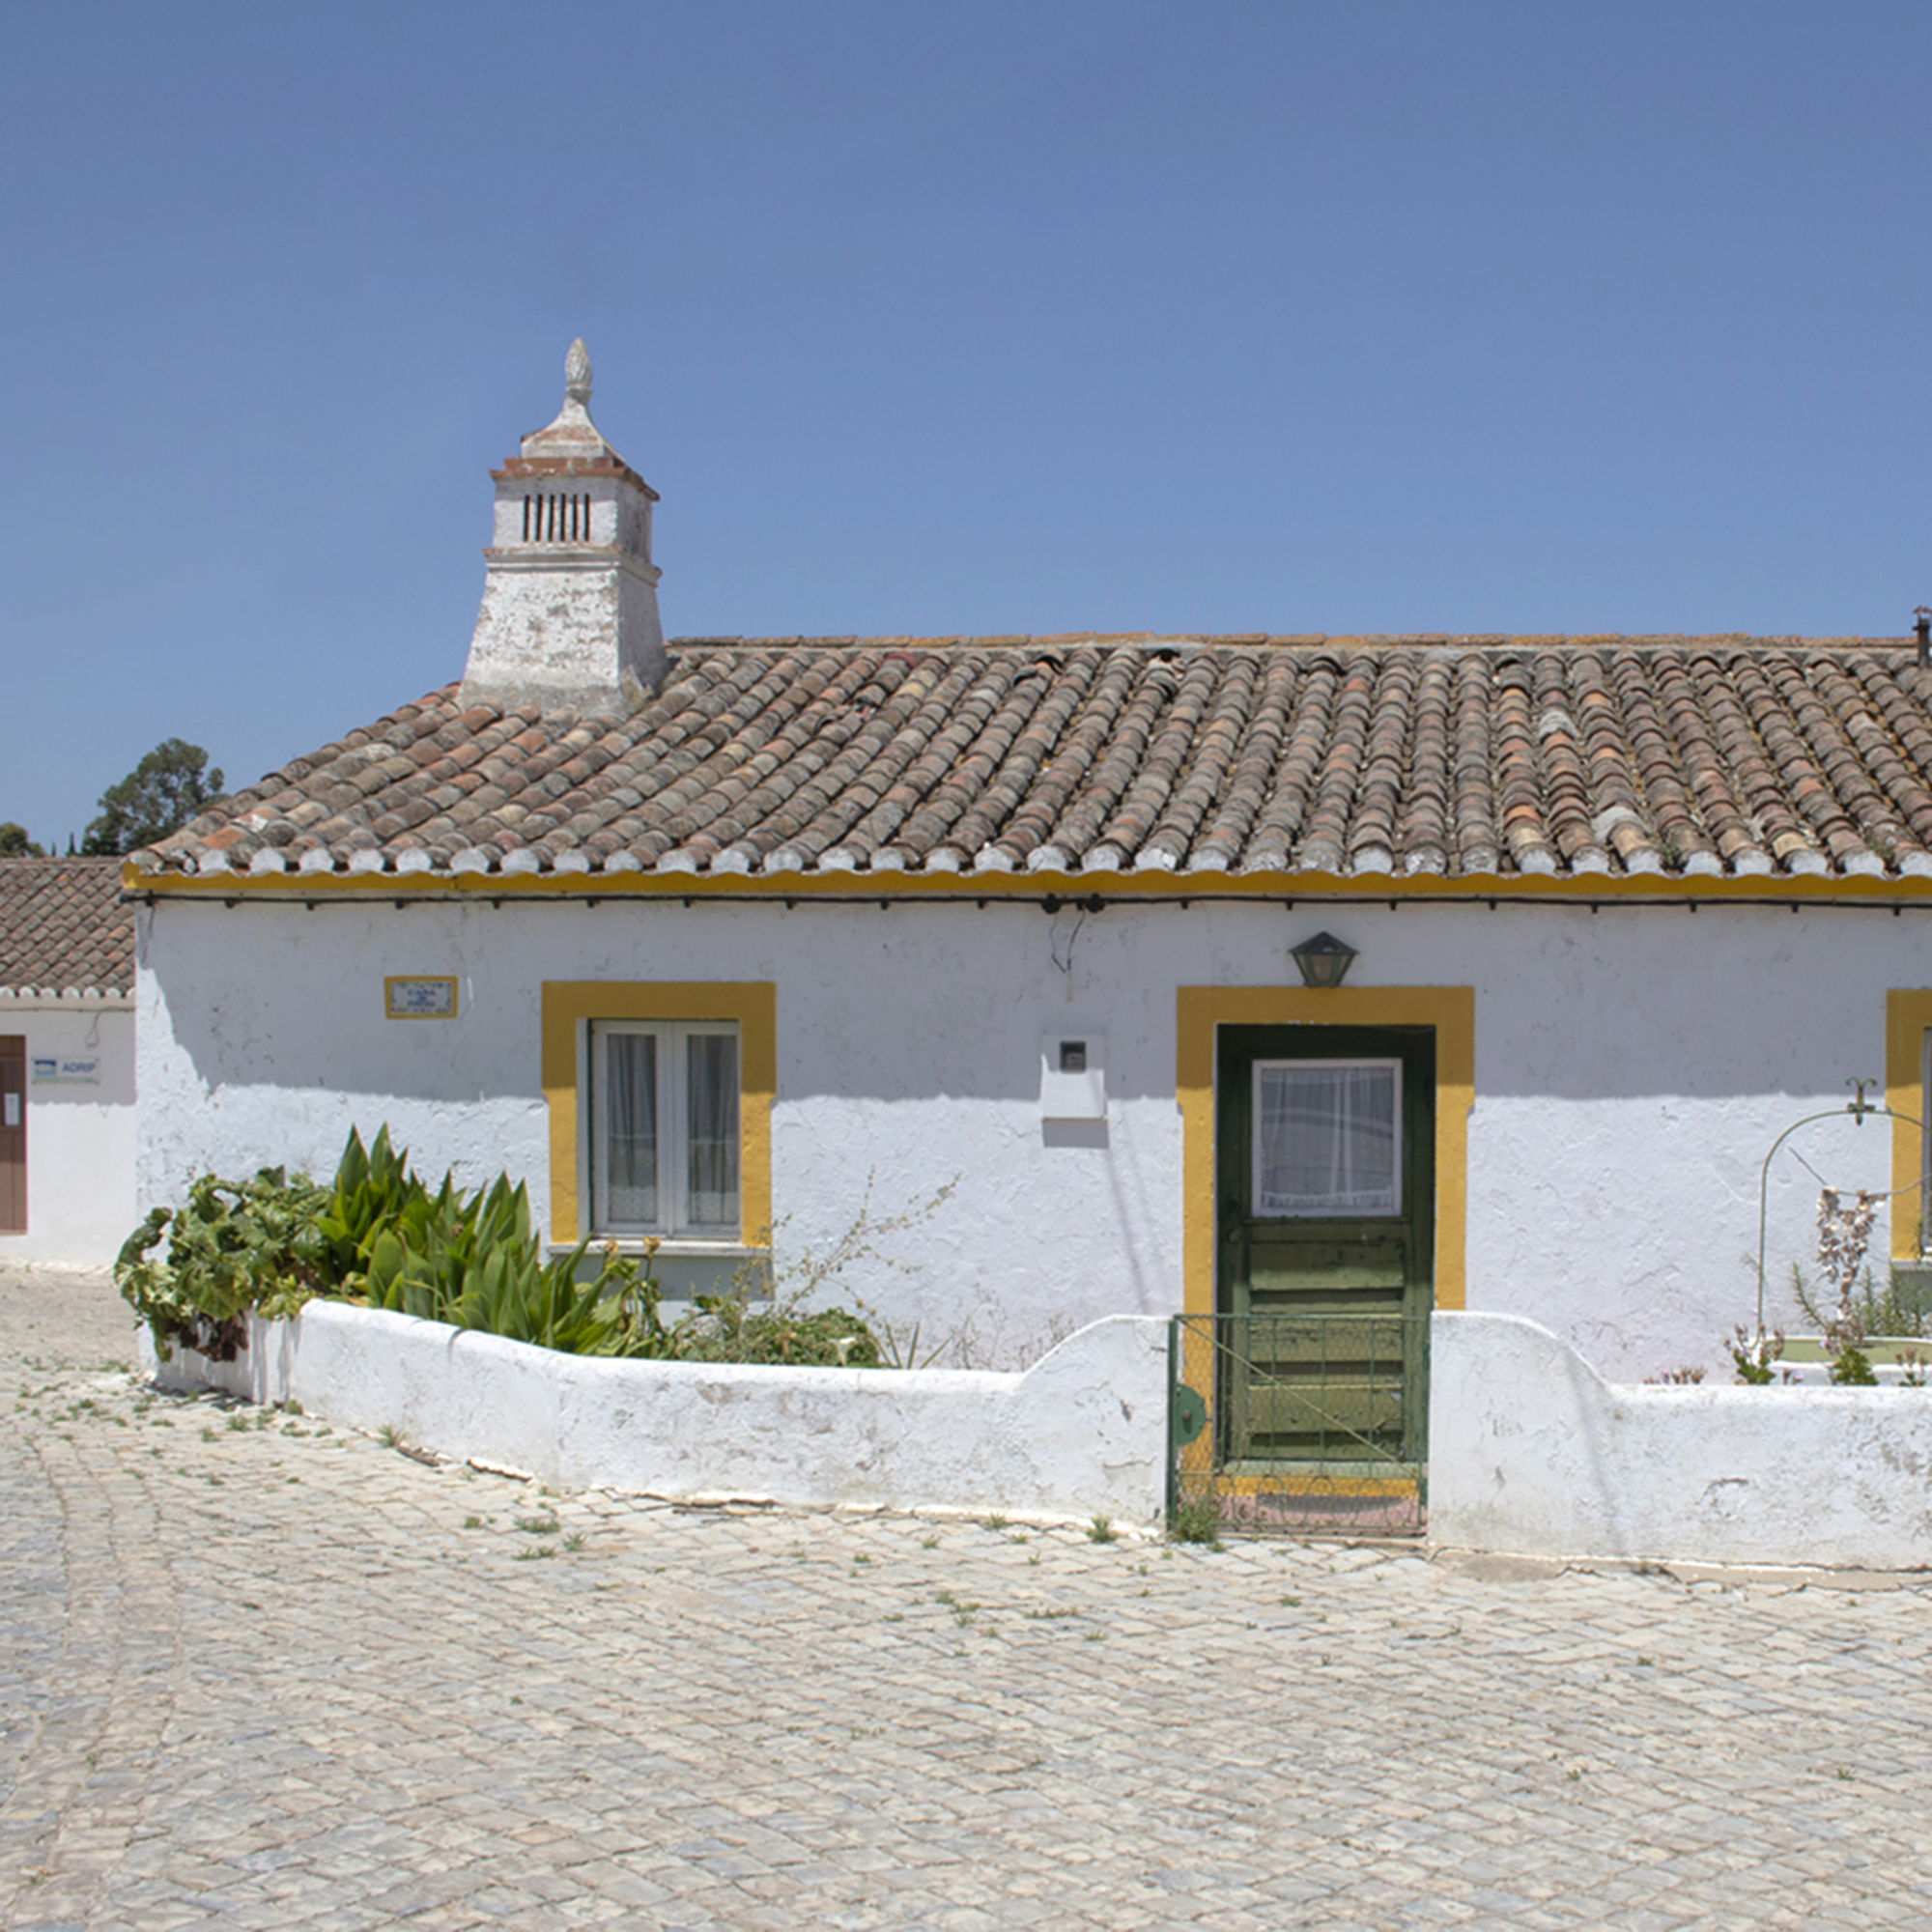 Whitewashed building in Algarve, Southern Portugal